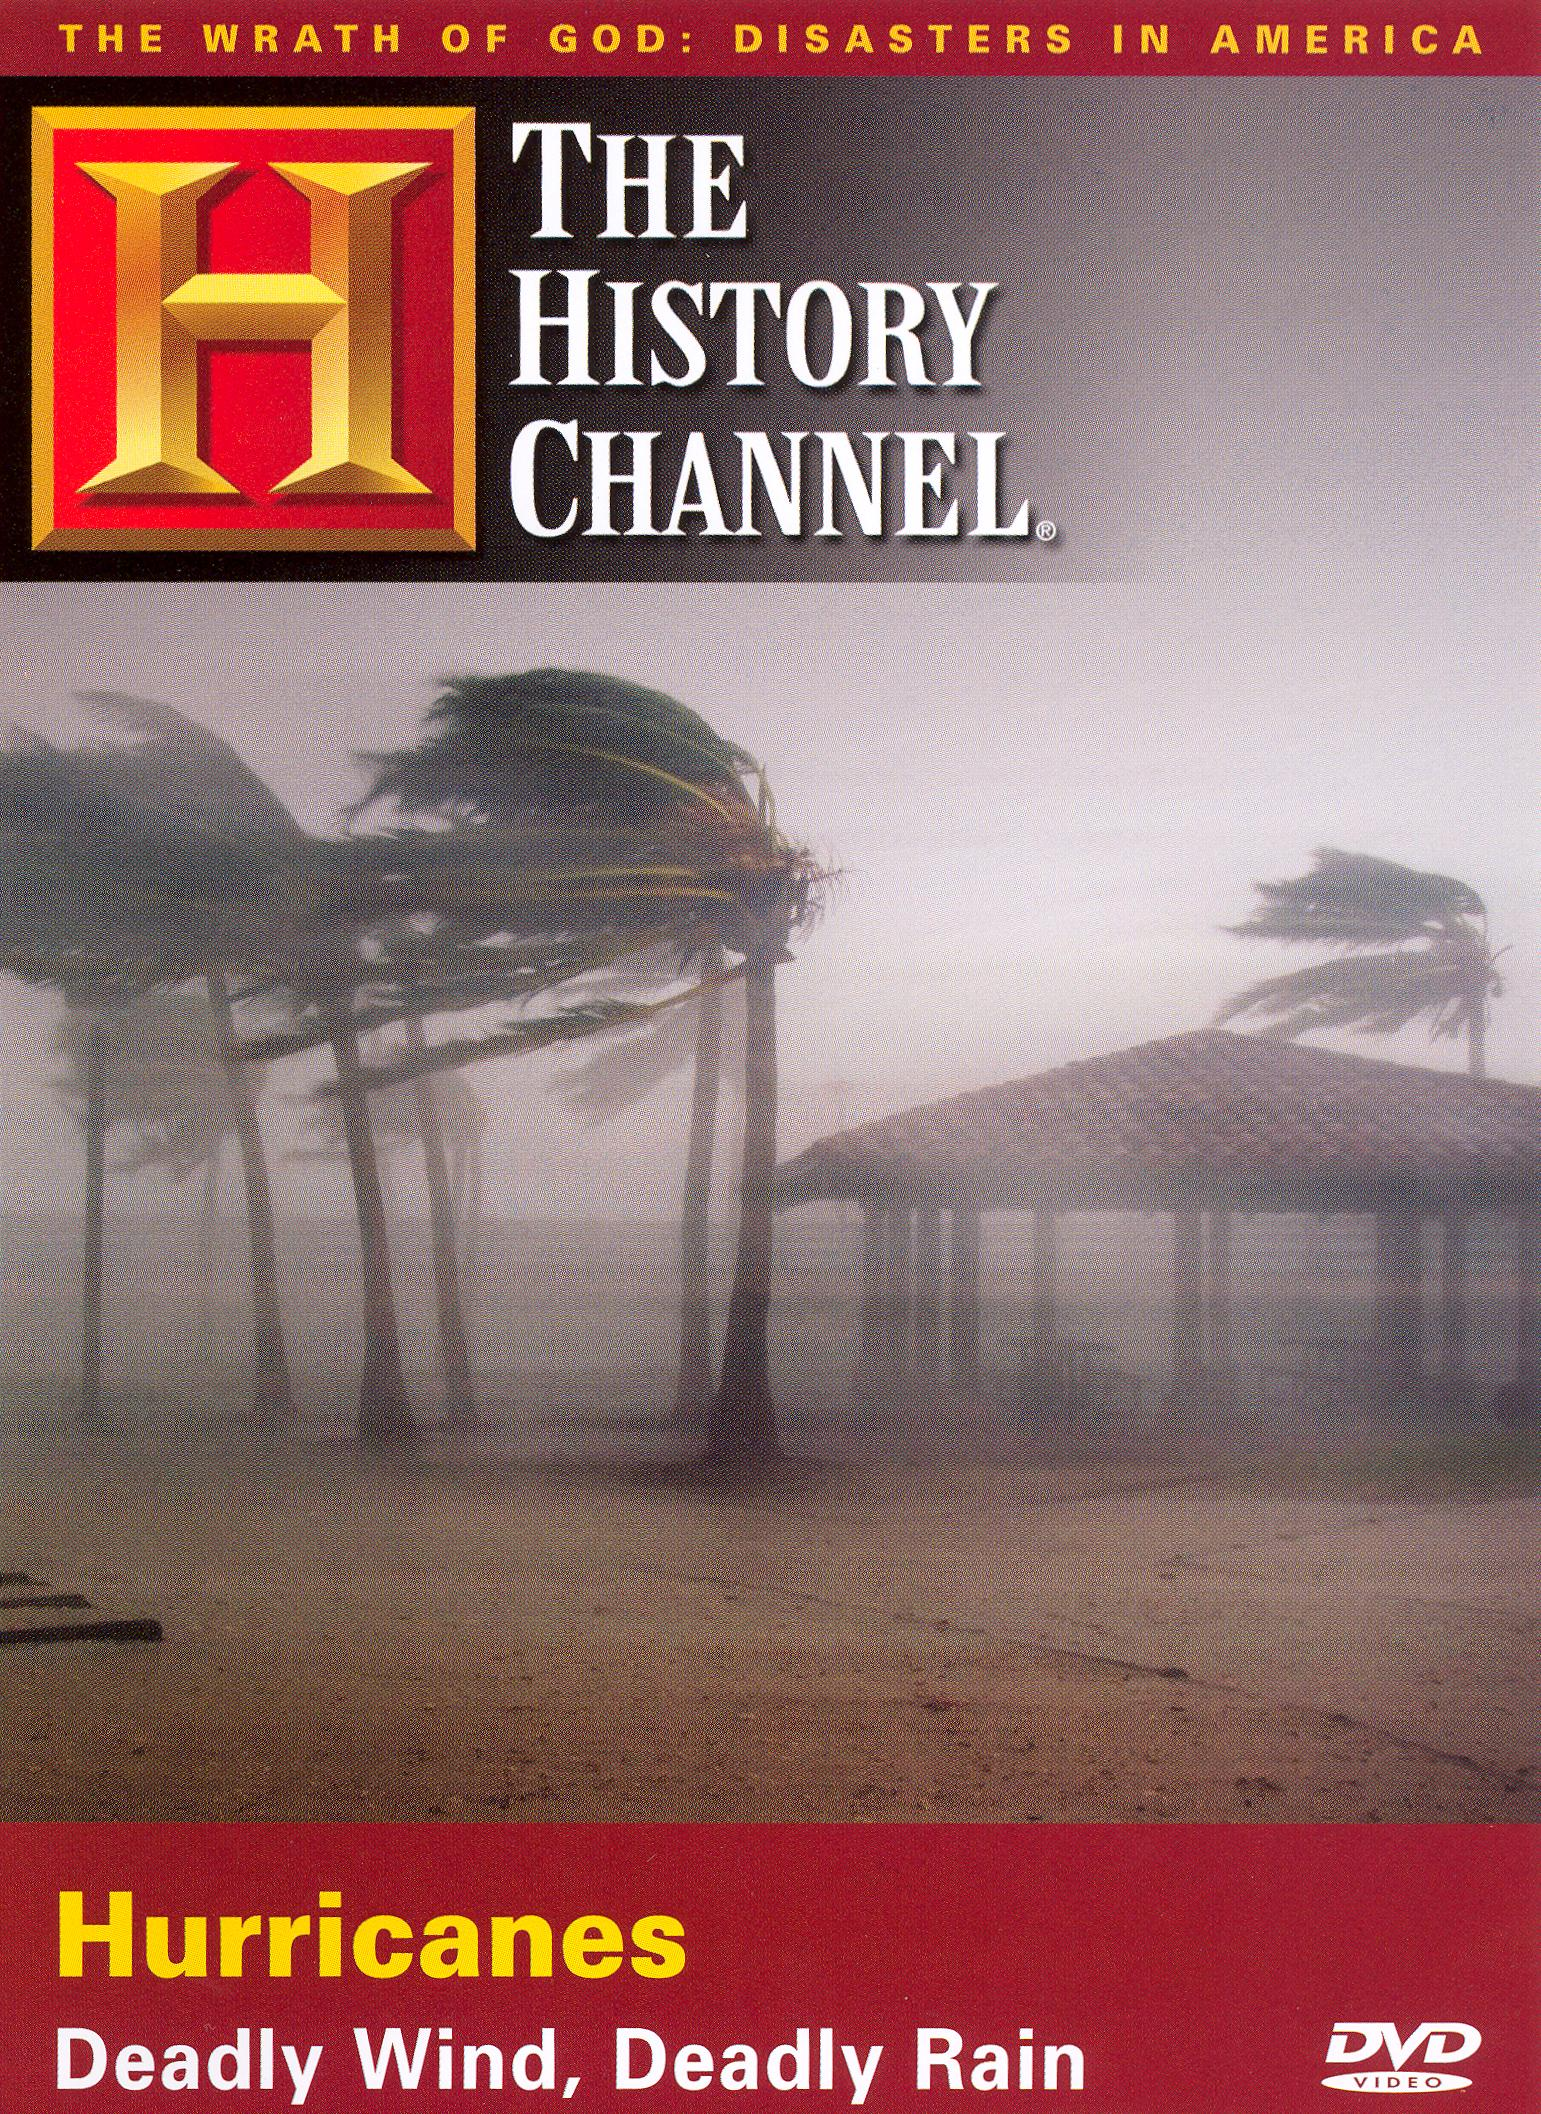 Wrath of God: Hurricanes - Category Five